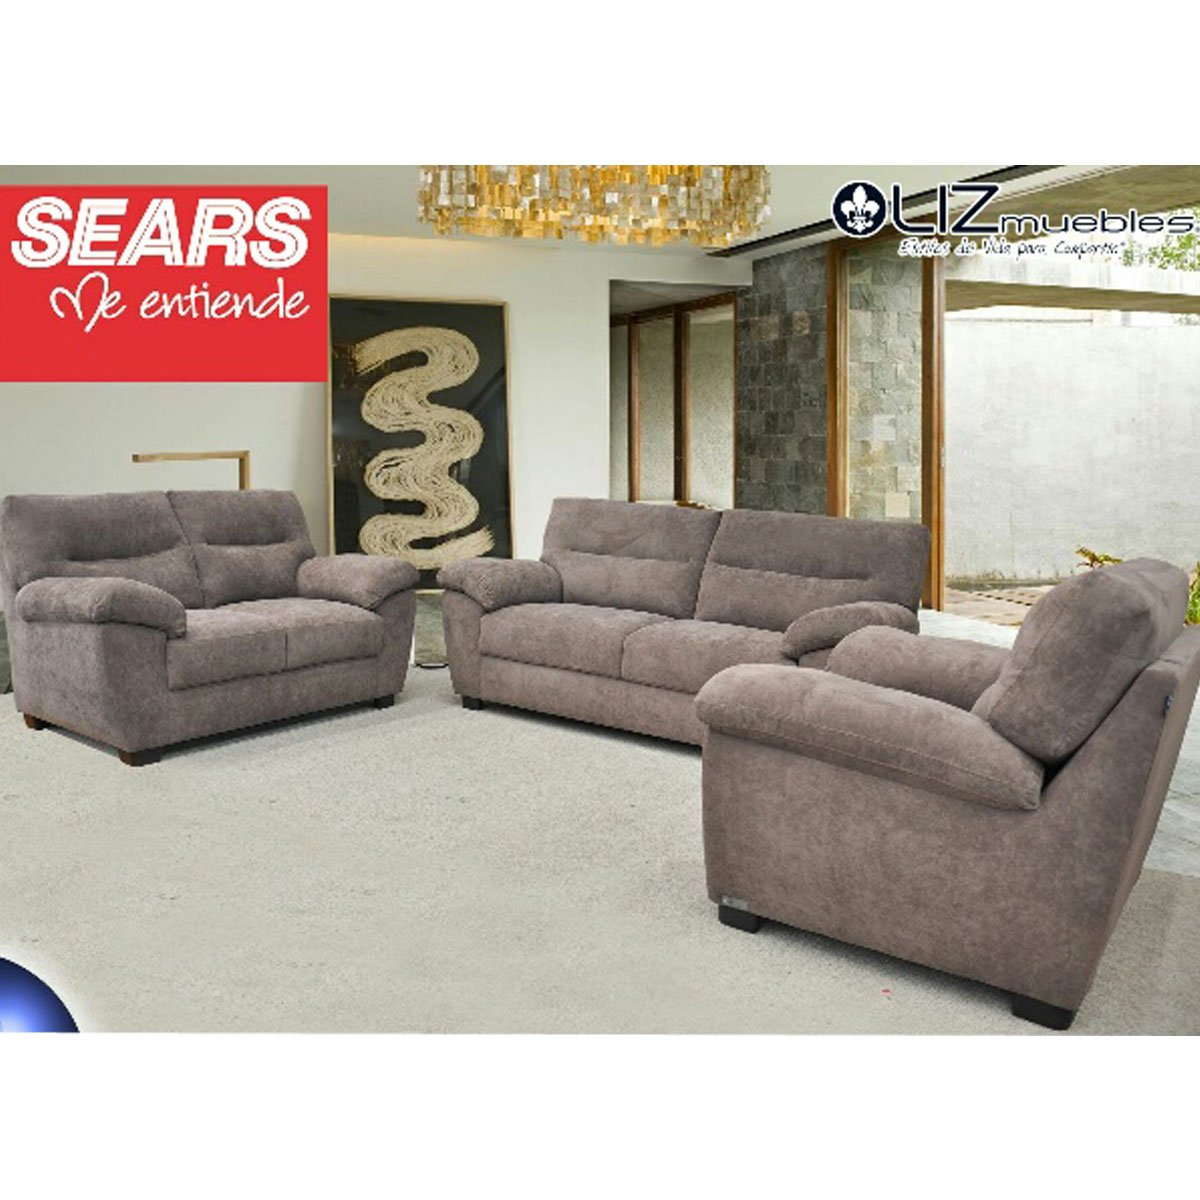 Sala greco 3 2 1 tapizado en tela topo sears com mx me for Muebles de sala sears